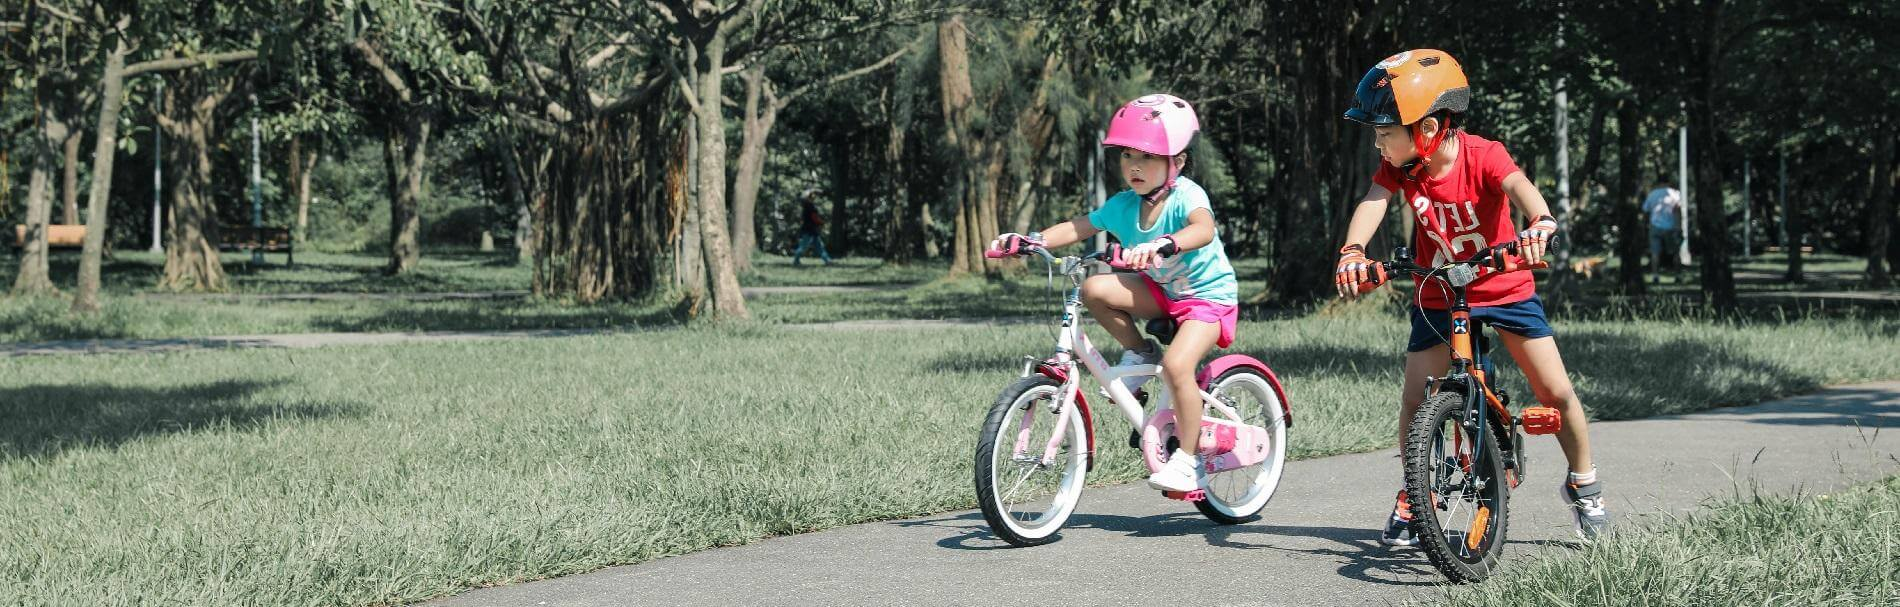 How To Choose The Best Bike For Kids (Buyer's Guide) | Blog Decathlon